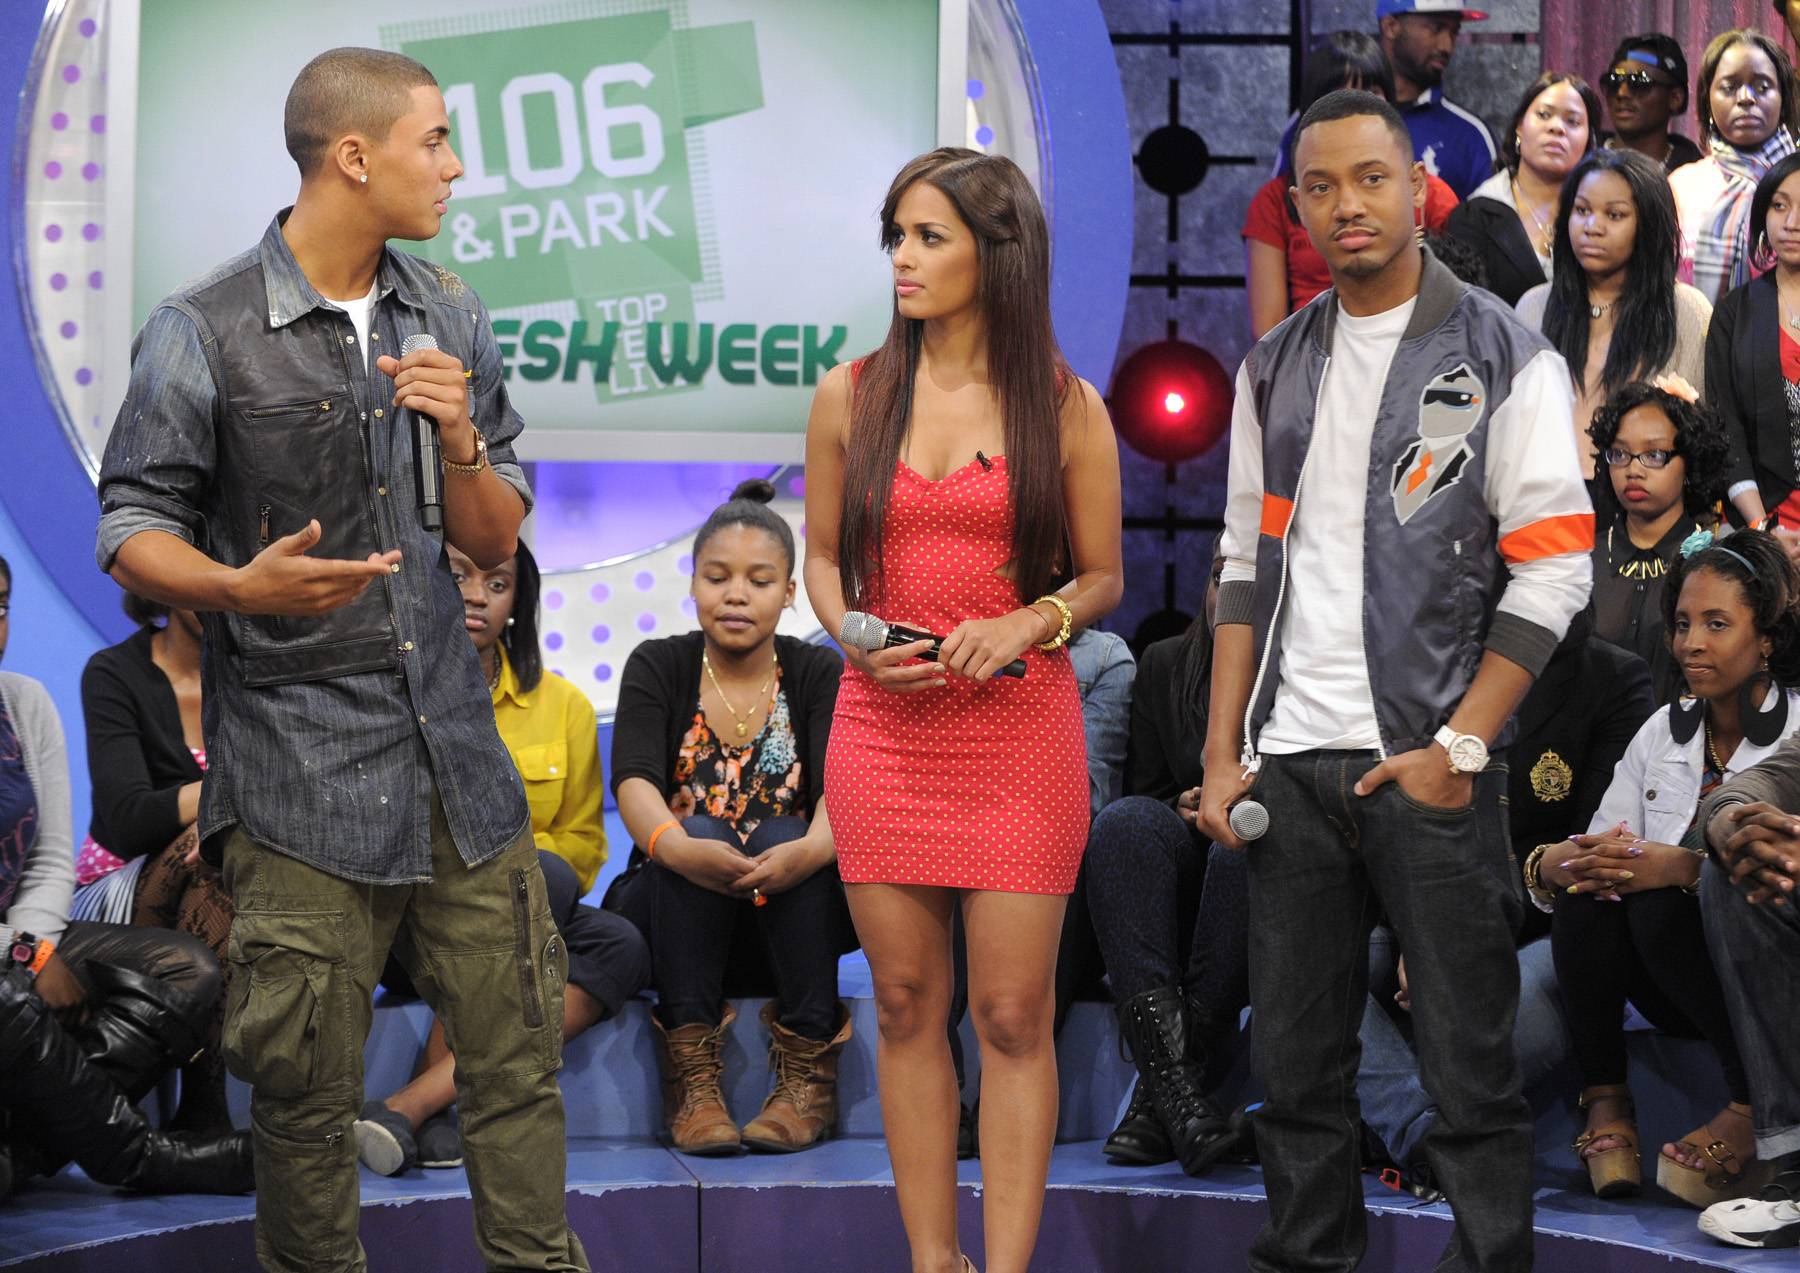 Tell Me Whats Good - Quincy talks about new video on set at106 & Park, May 3, 2012. (Photo: John Ricard / BET)